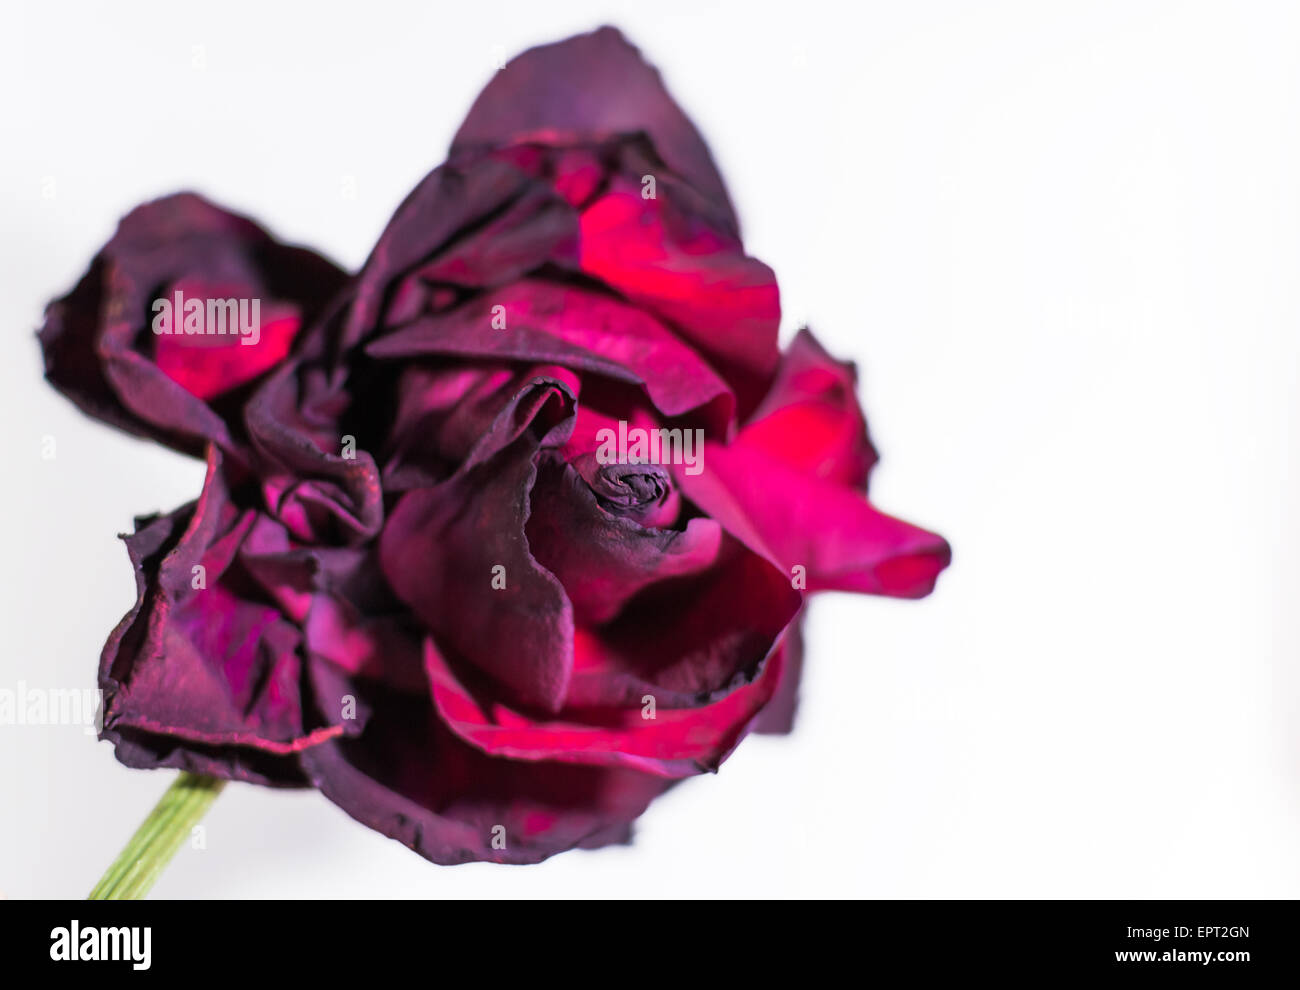 Solitary rose in a state of decay on a white background - Stock Image